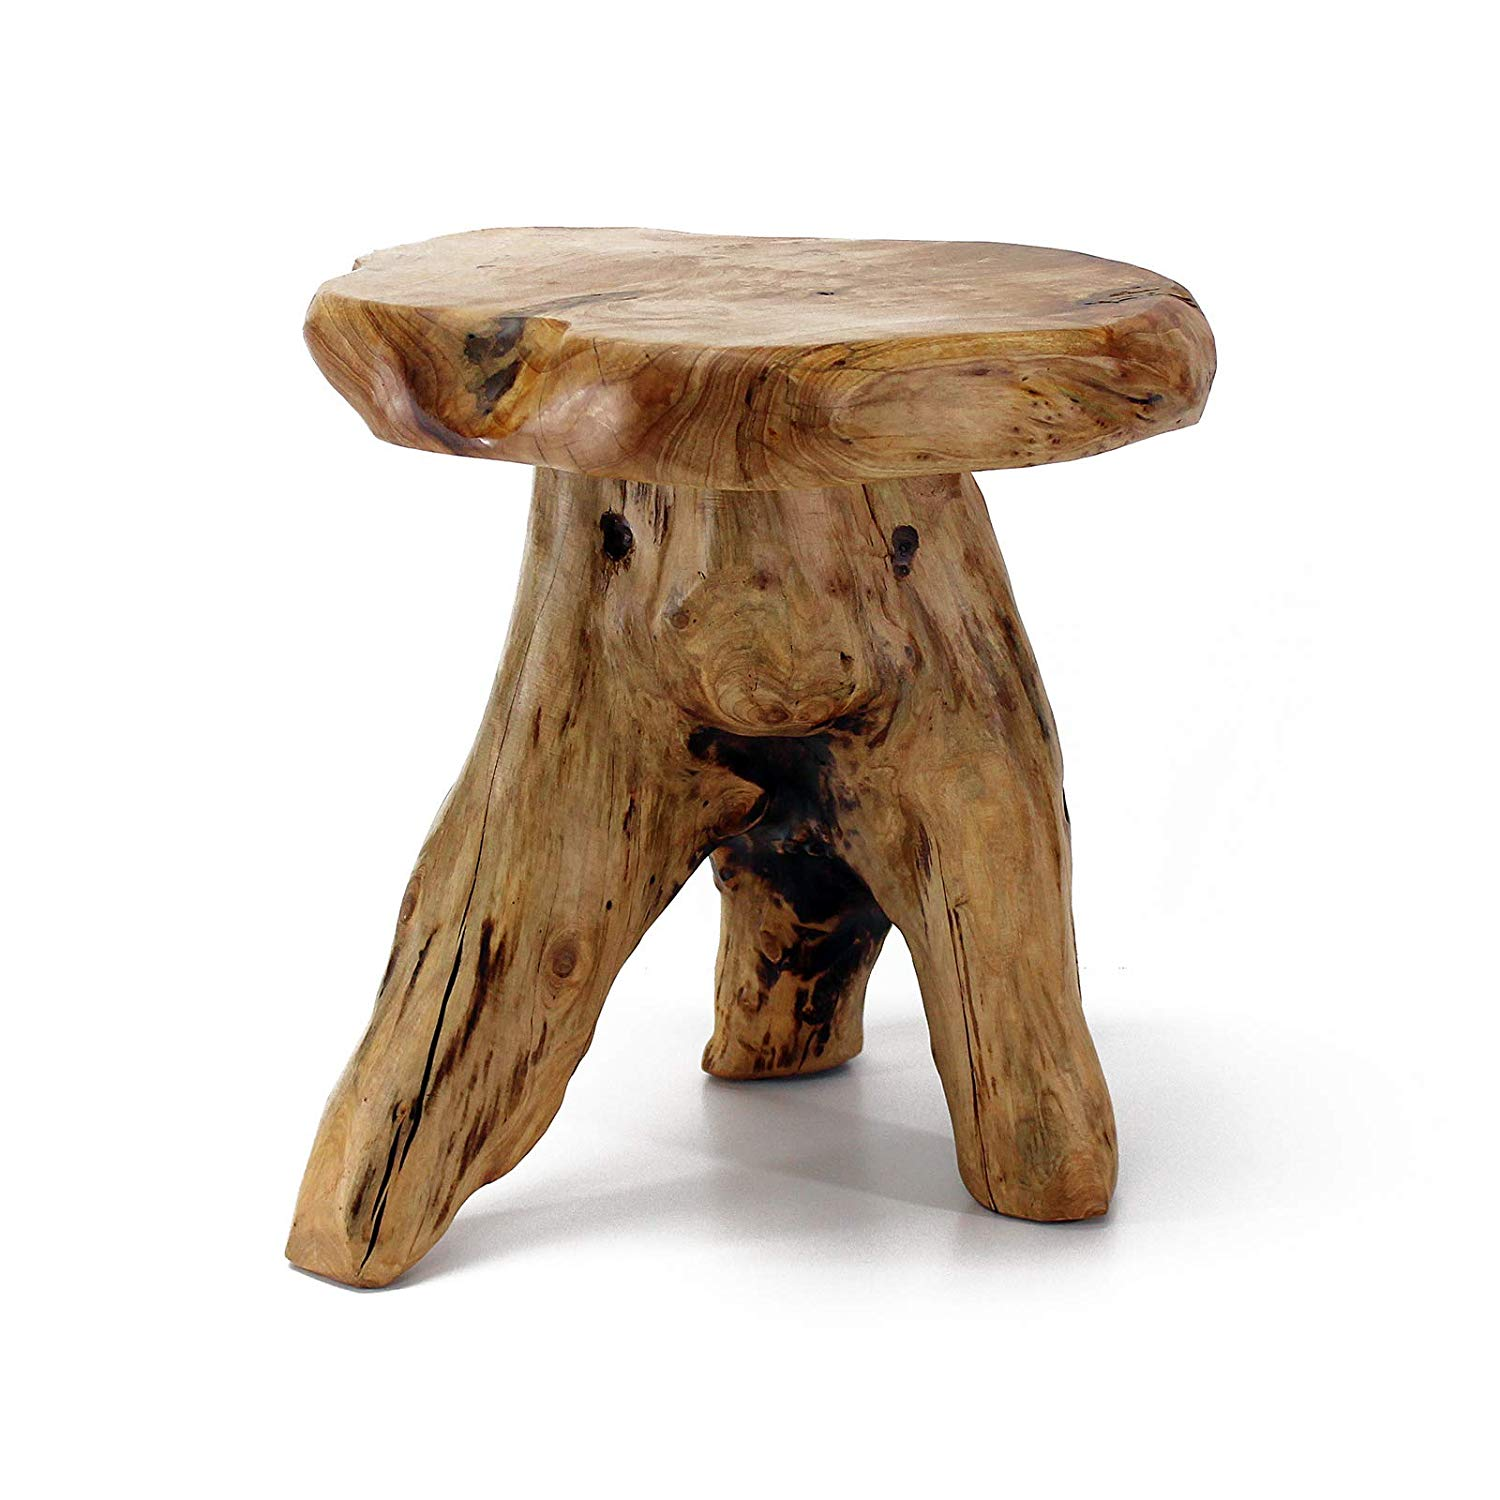 welland tree stump stool live edge natural side accent table brown plant stand nightstand mushroom tall garden outdoor mid century wood legs chesterfield sofa dale tiffany tulip